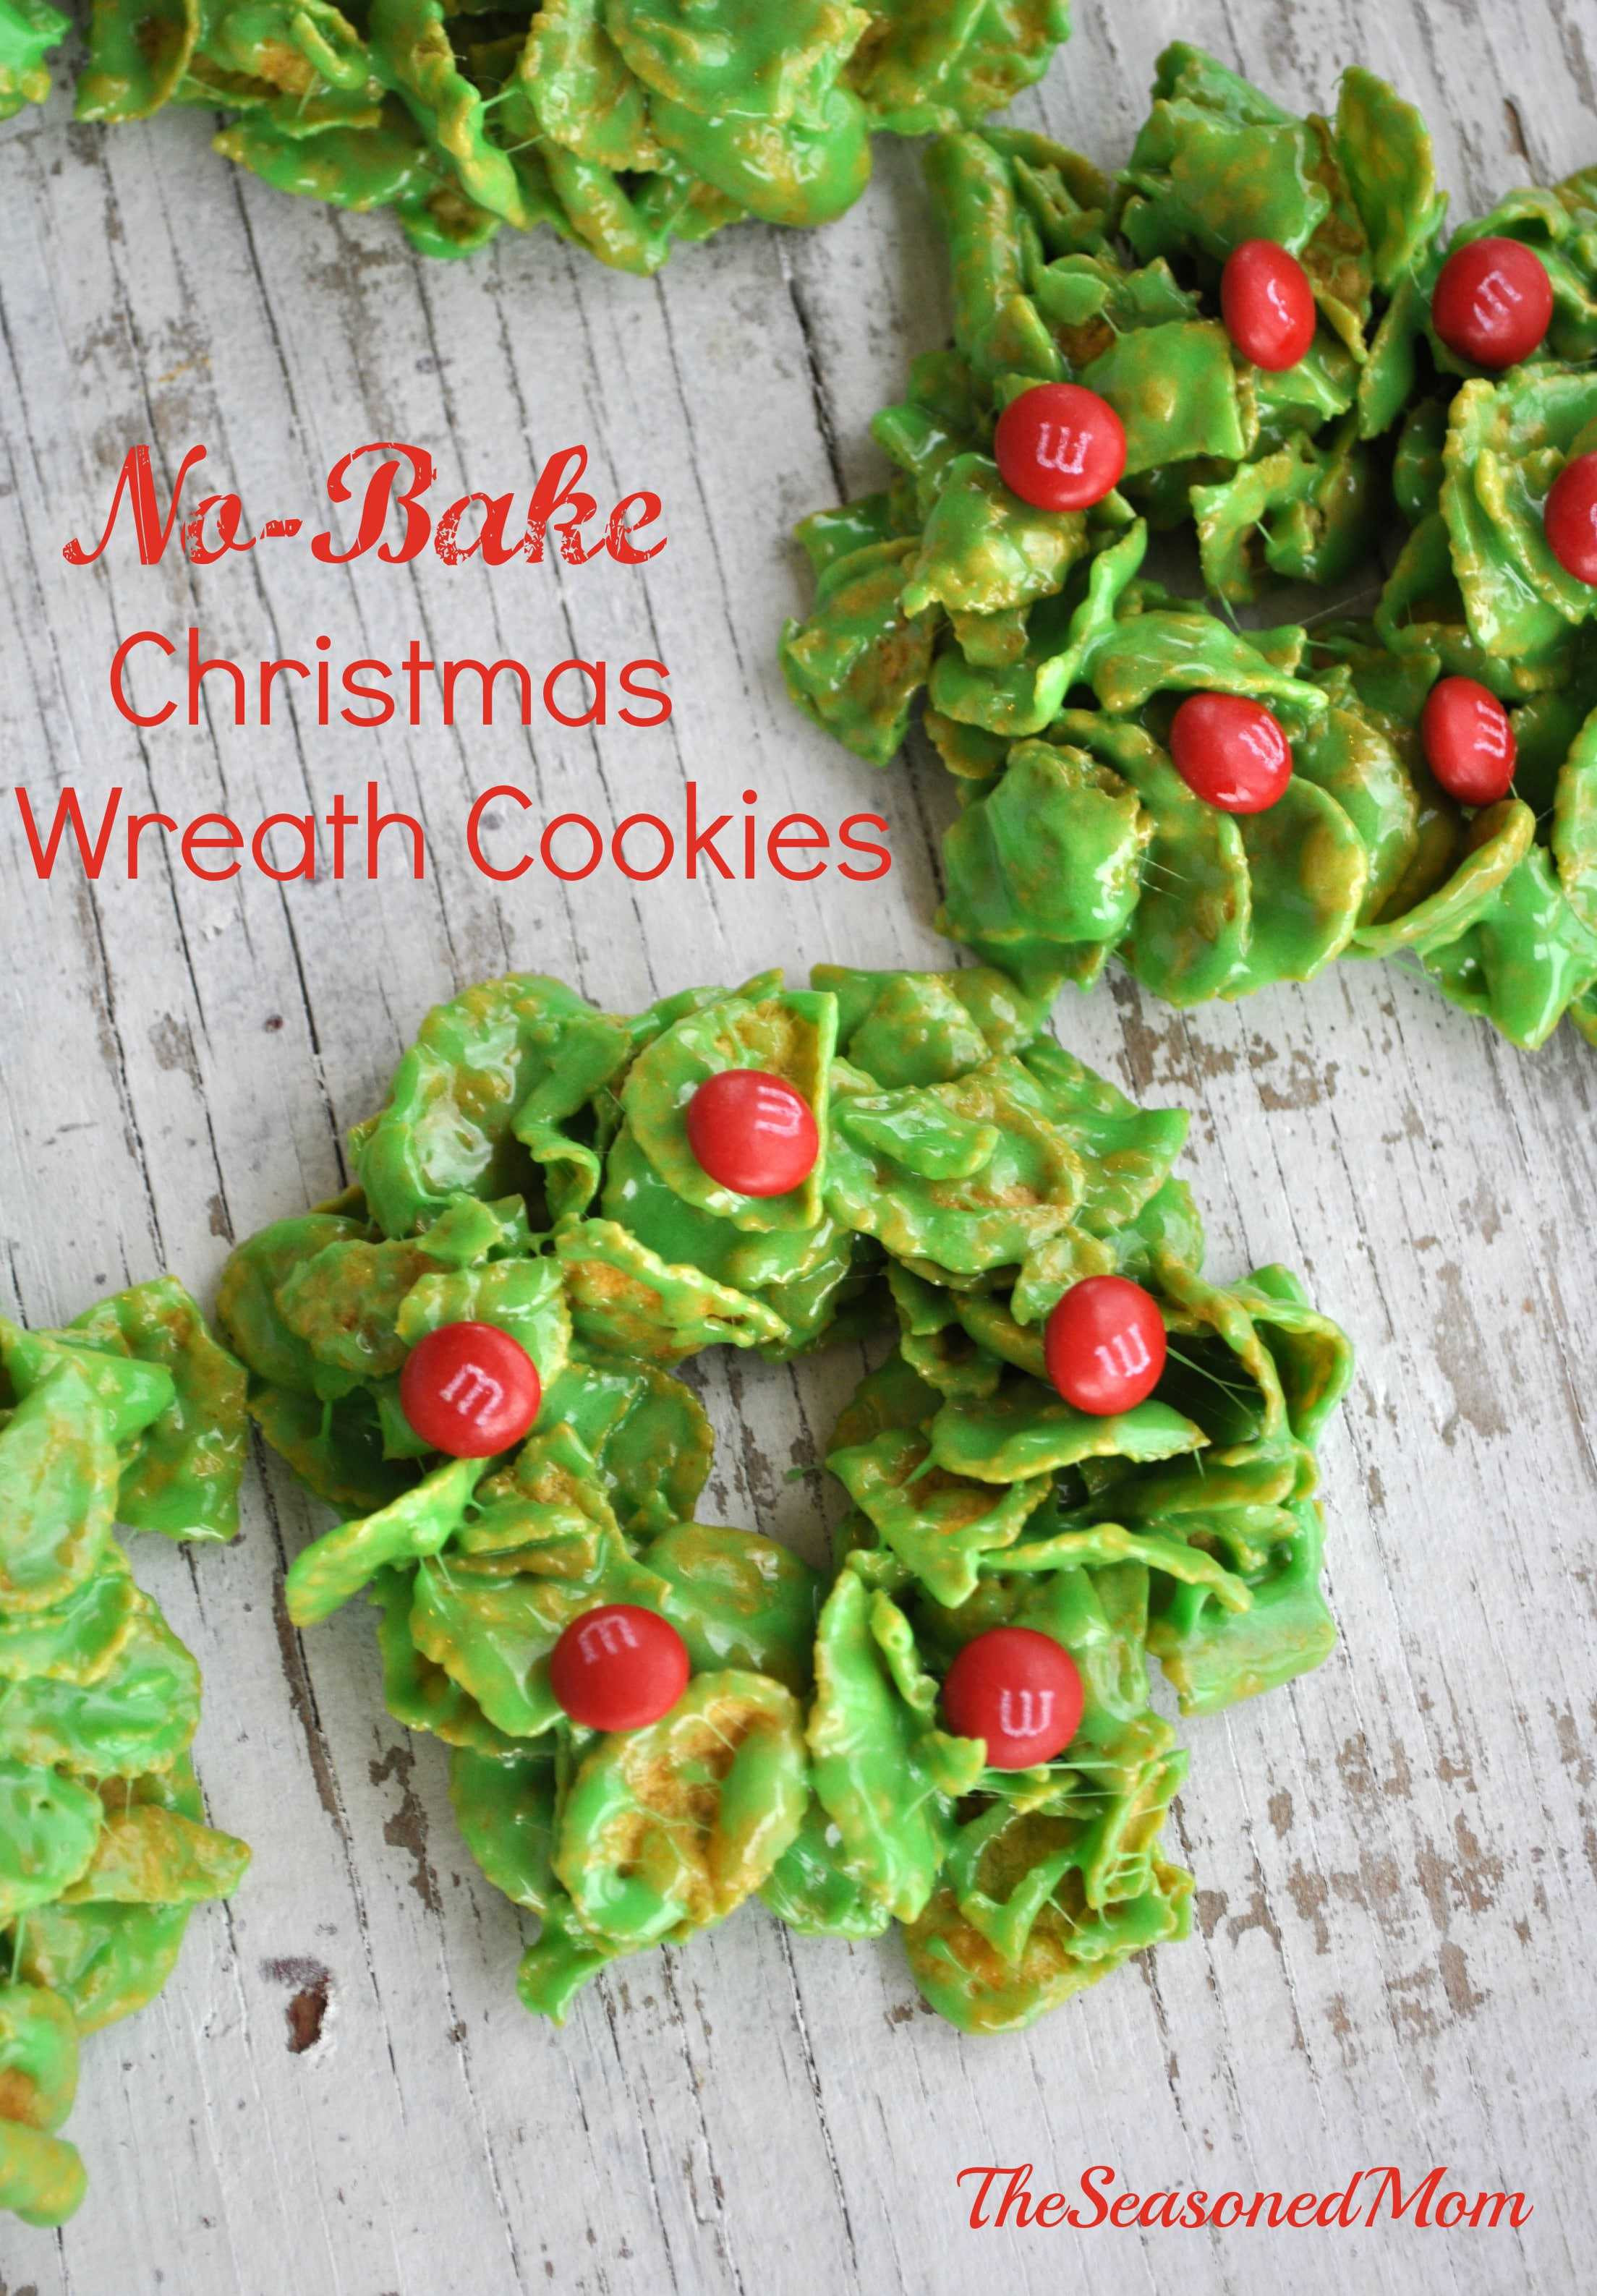 No Bake Christmas Wreath Cookies  Holiday Cookies with M&M s Can s The Seasoned Mom